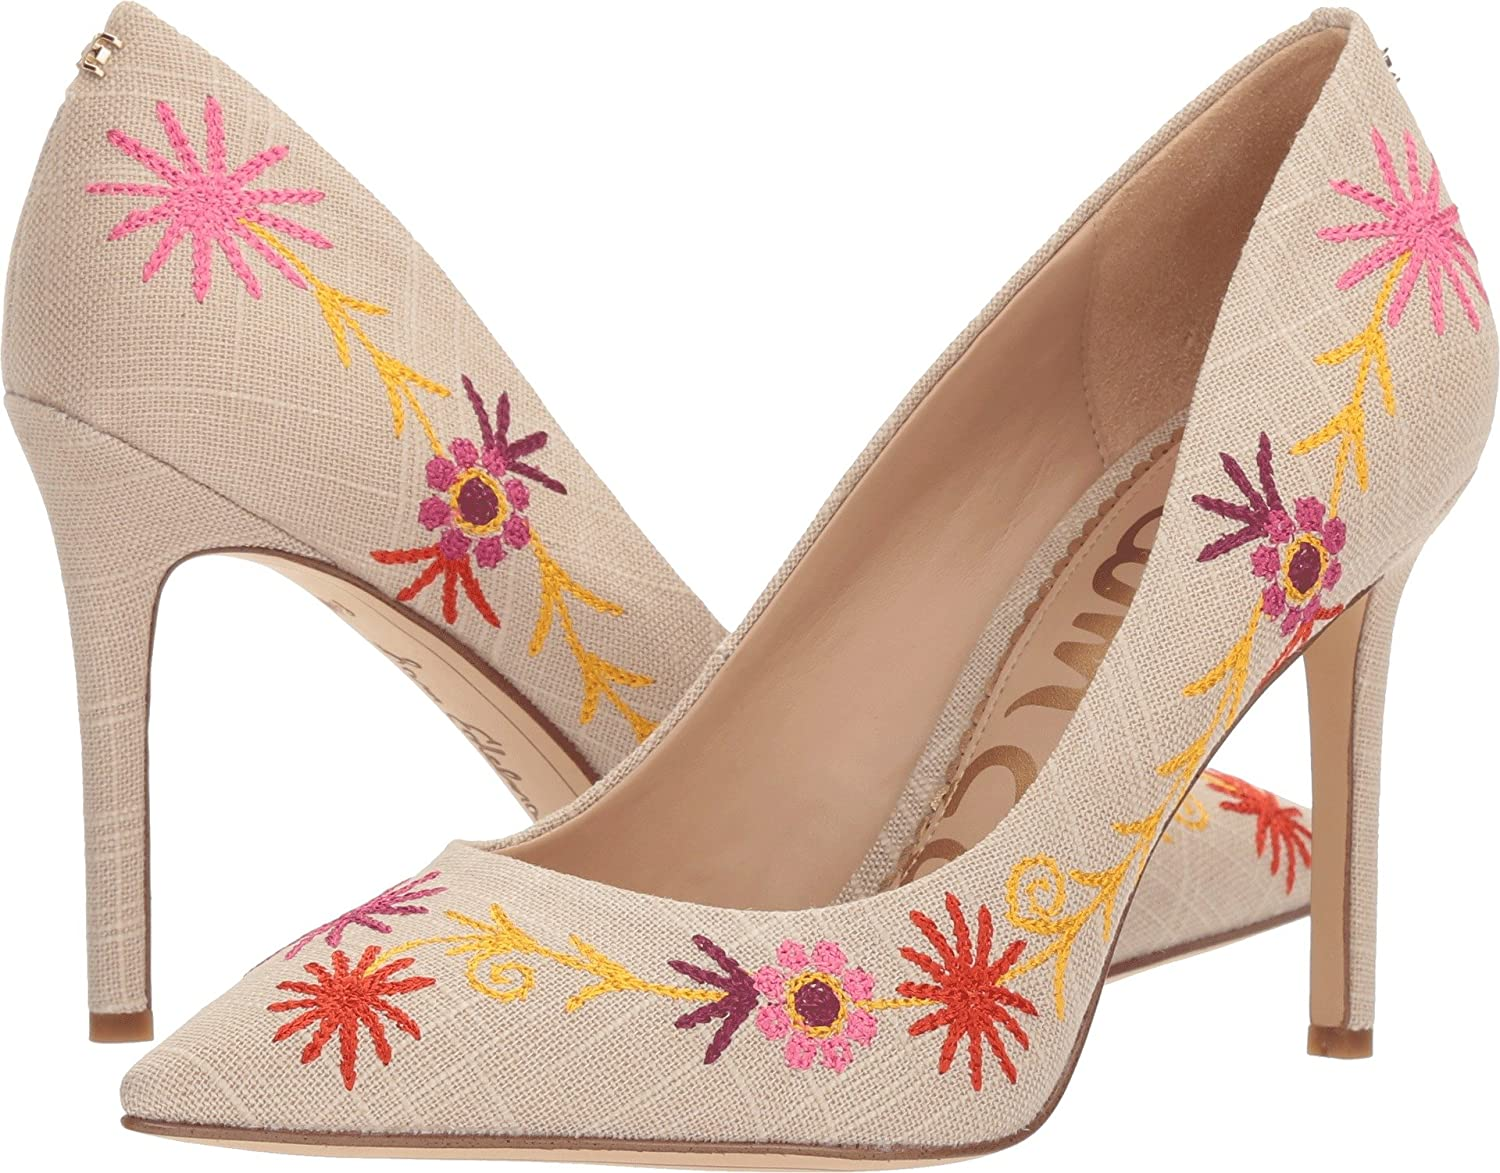 Sam Edelman Womens Hazel 4 B076JKTFDB 10.5 B(M) US|Natural/Yellow Multi Embroidery Kid Suede Leather